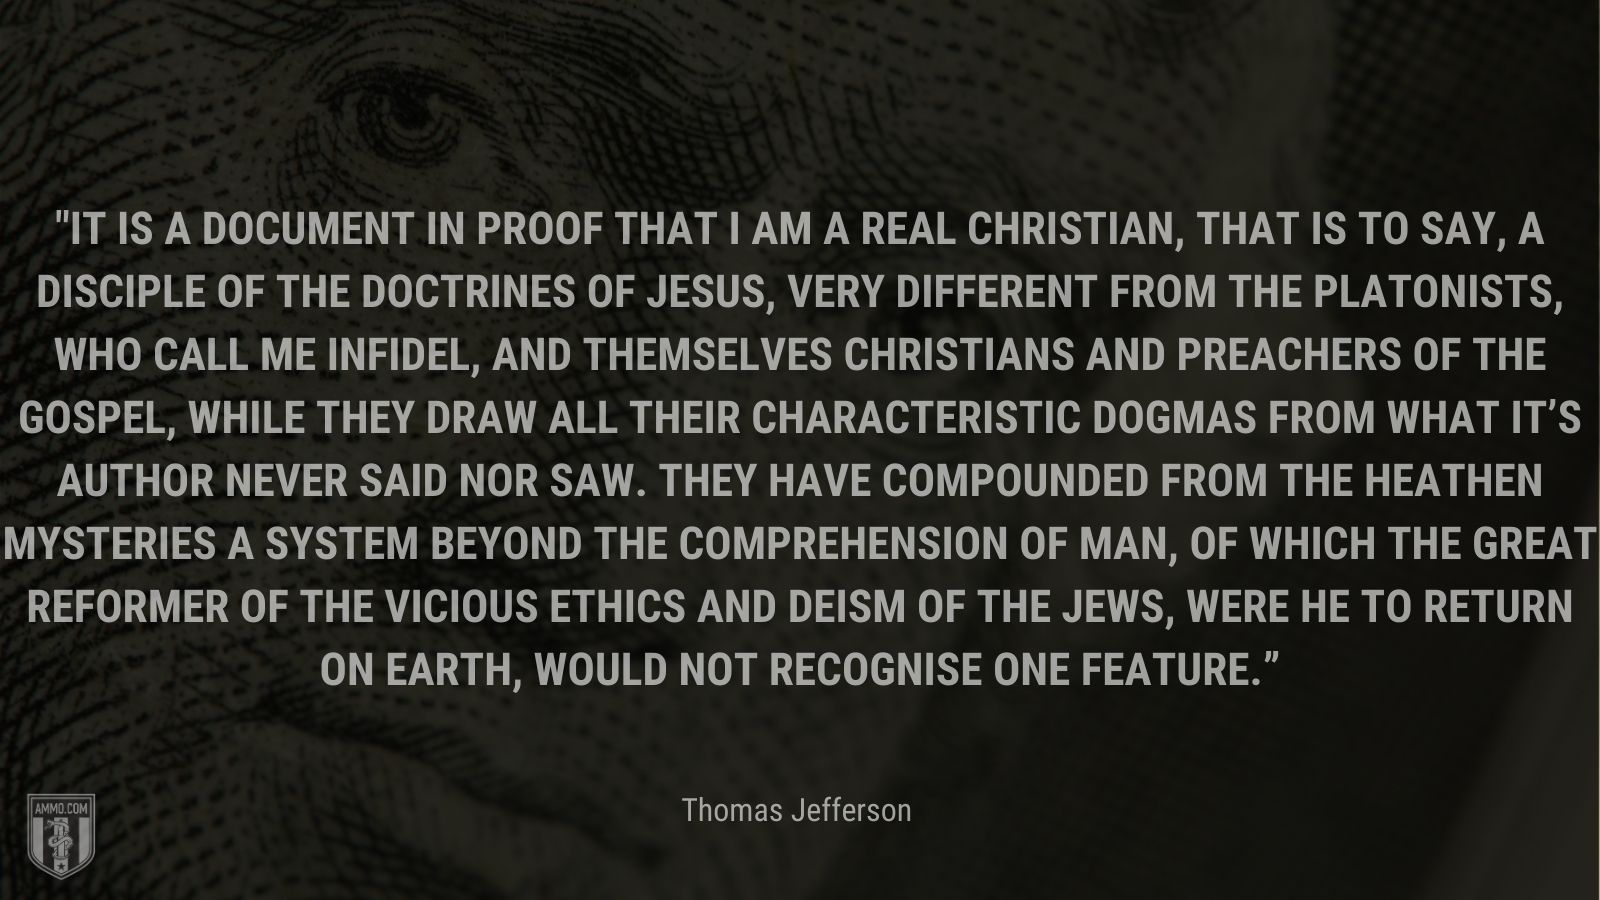 """""""It is a document in proof that I am a real Christian, that is to say, a disciple of the doctrines of Jesus, very different from the Platonists, who call me infidel, and themselves Christians and preachers of the gospel, while they draw all their characteristic dogmas from what it's Author never said nor saw. they have compounded from the heathen mysteries a system beyond the comprehension of man, of which the great reformer of the vicious ethics and deism of the Jews, were he to return on earth, would not recognise one feature."""" - Thomas Jefferson"""